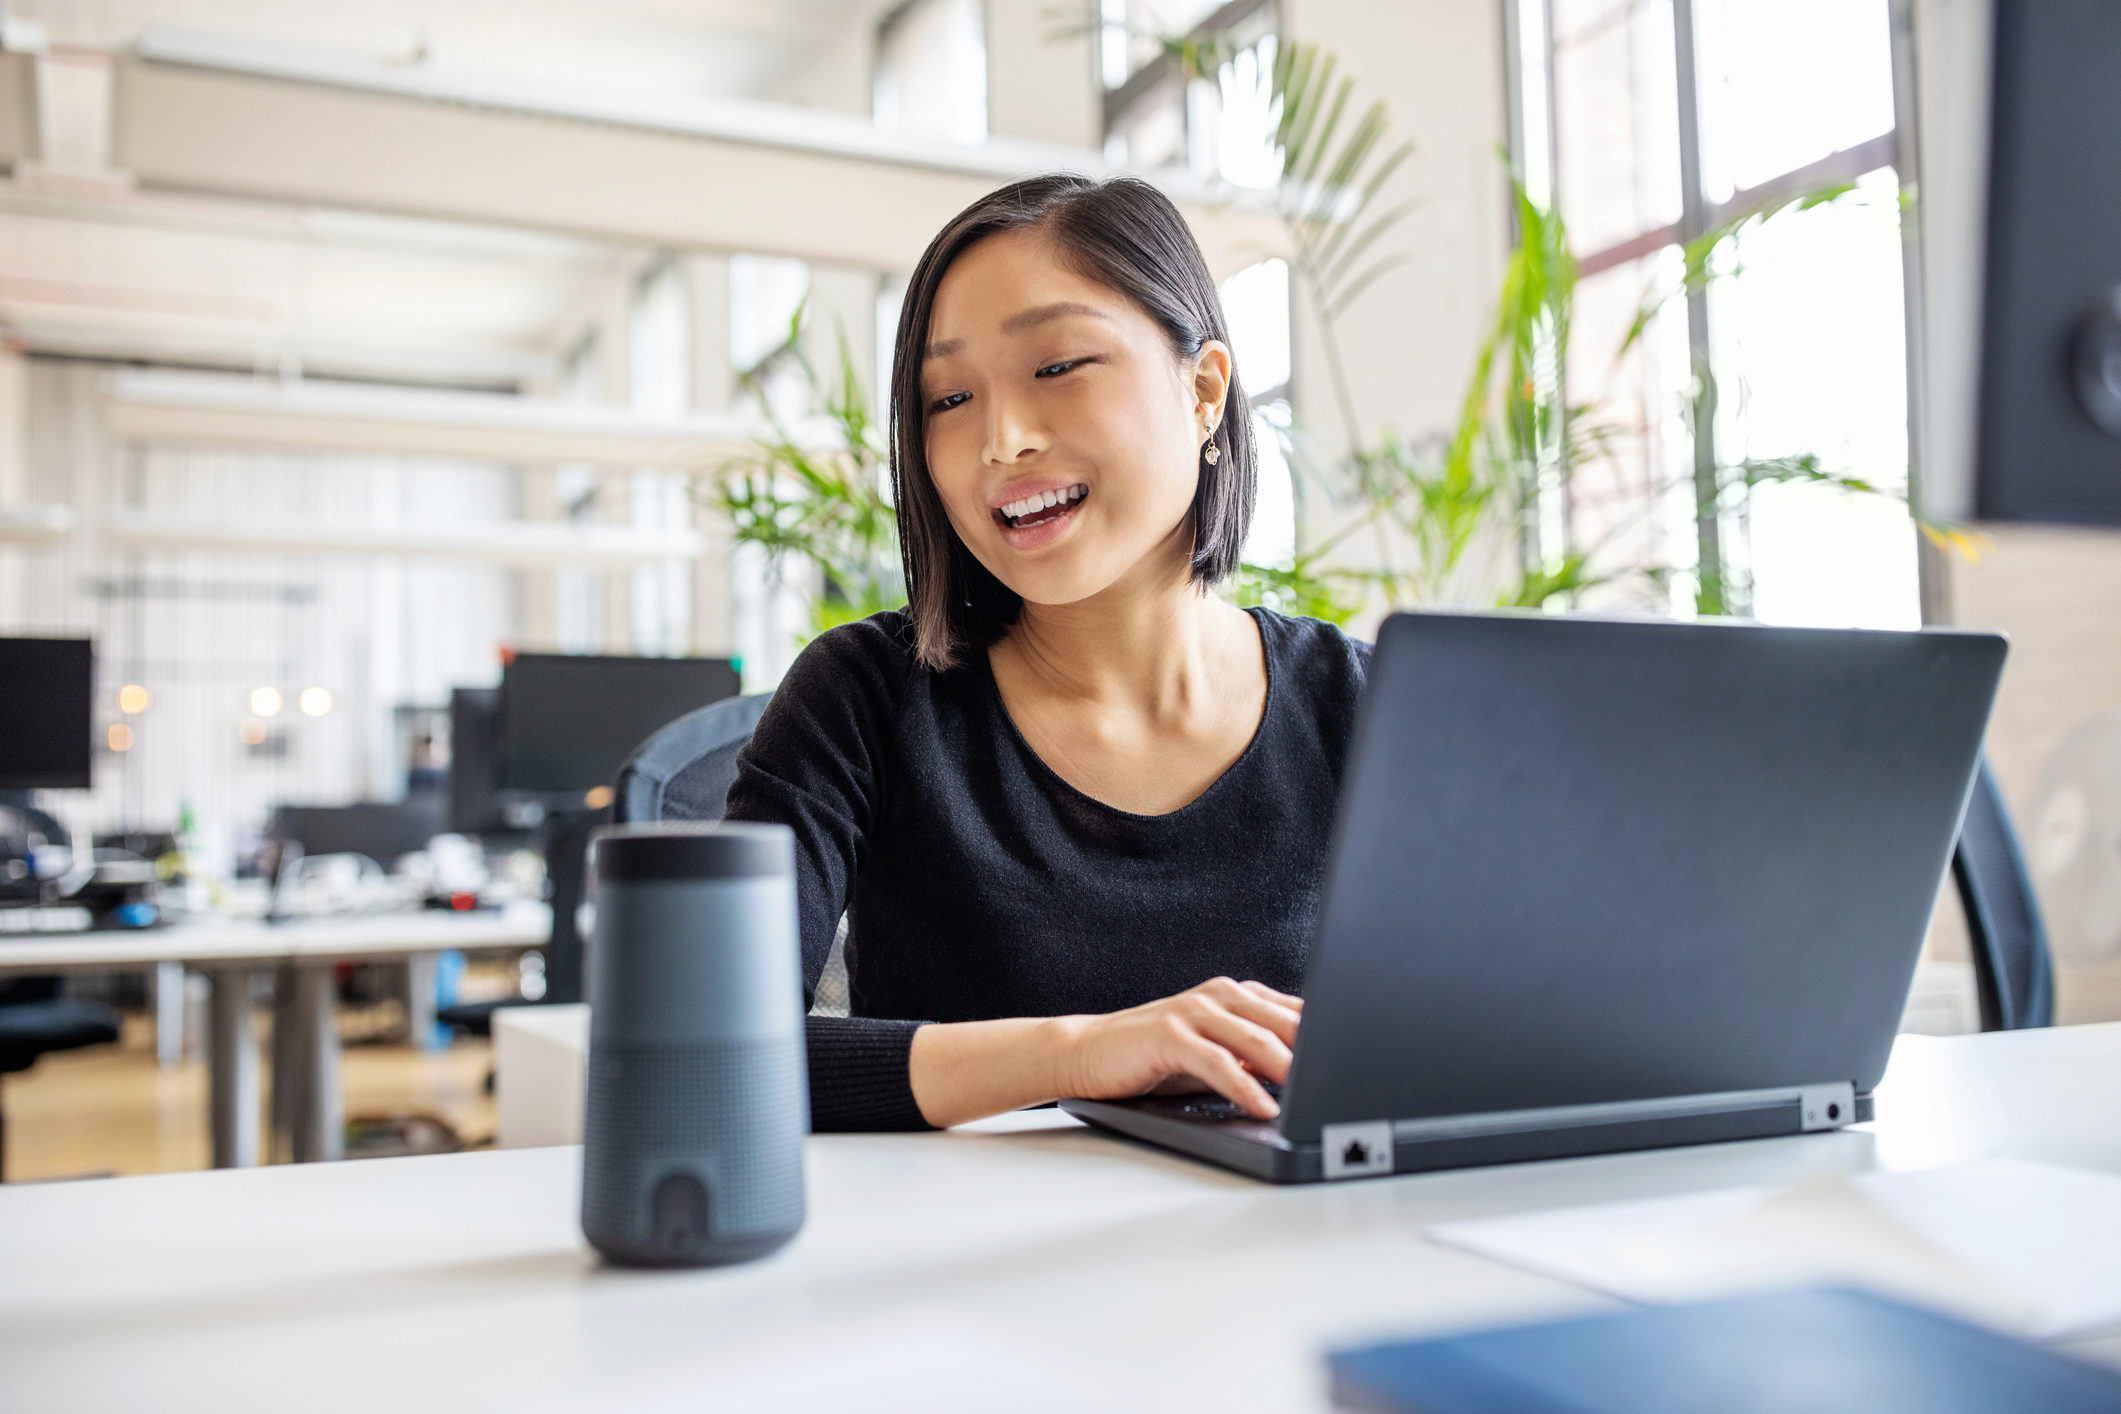 Female professional using virtual assistant at desk